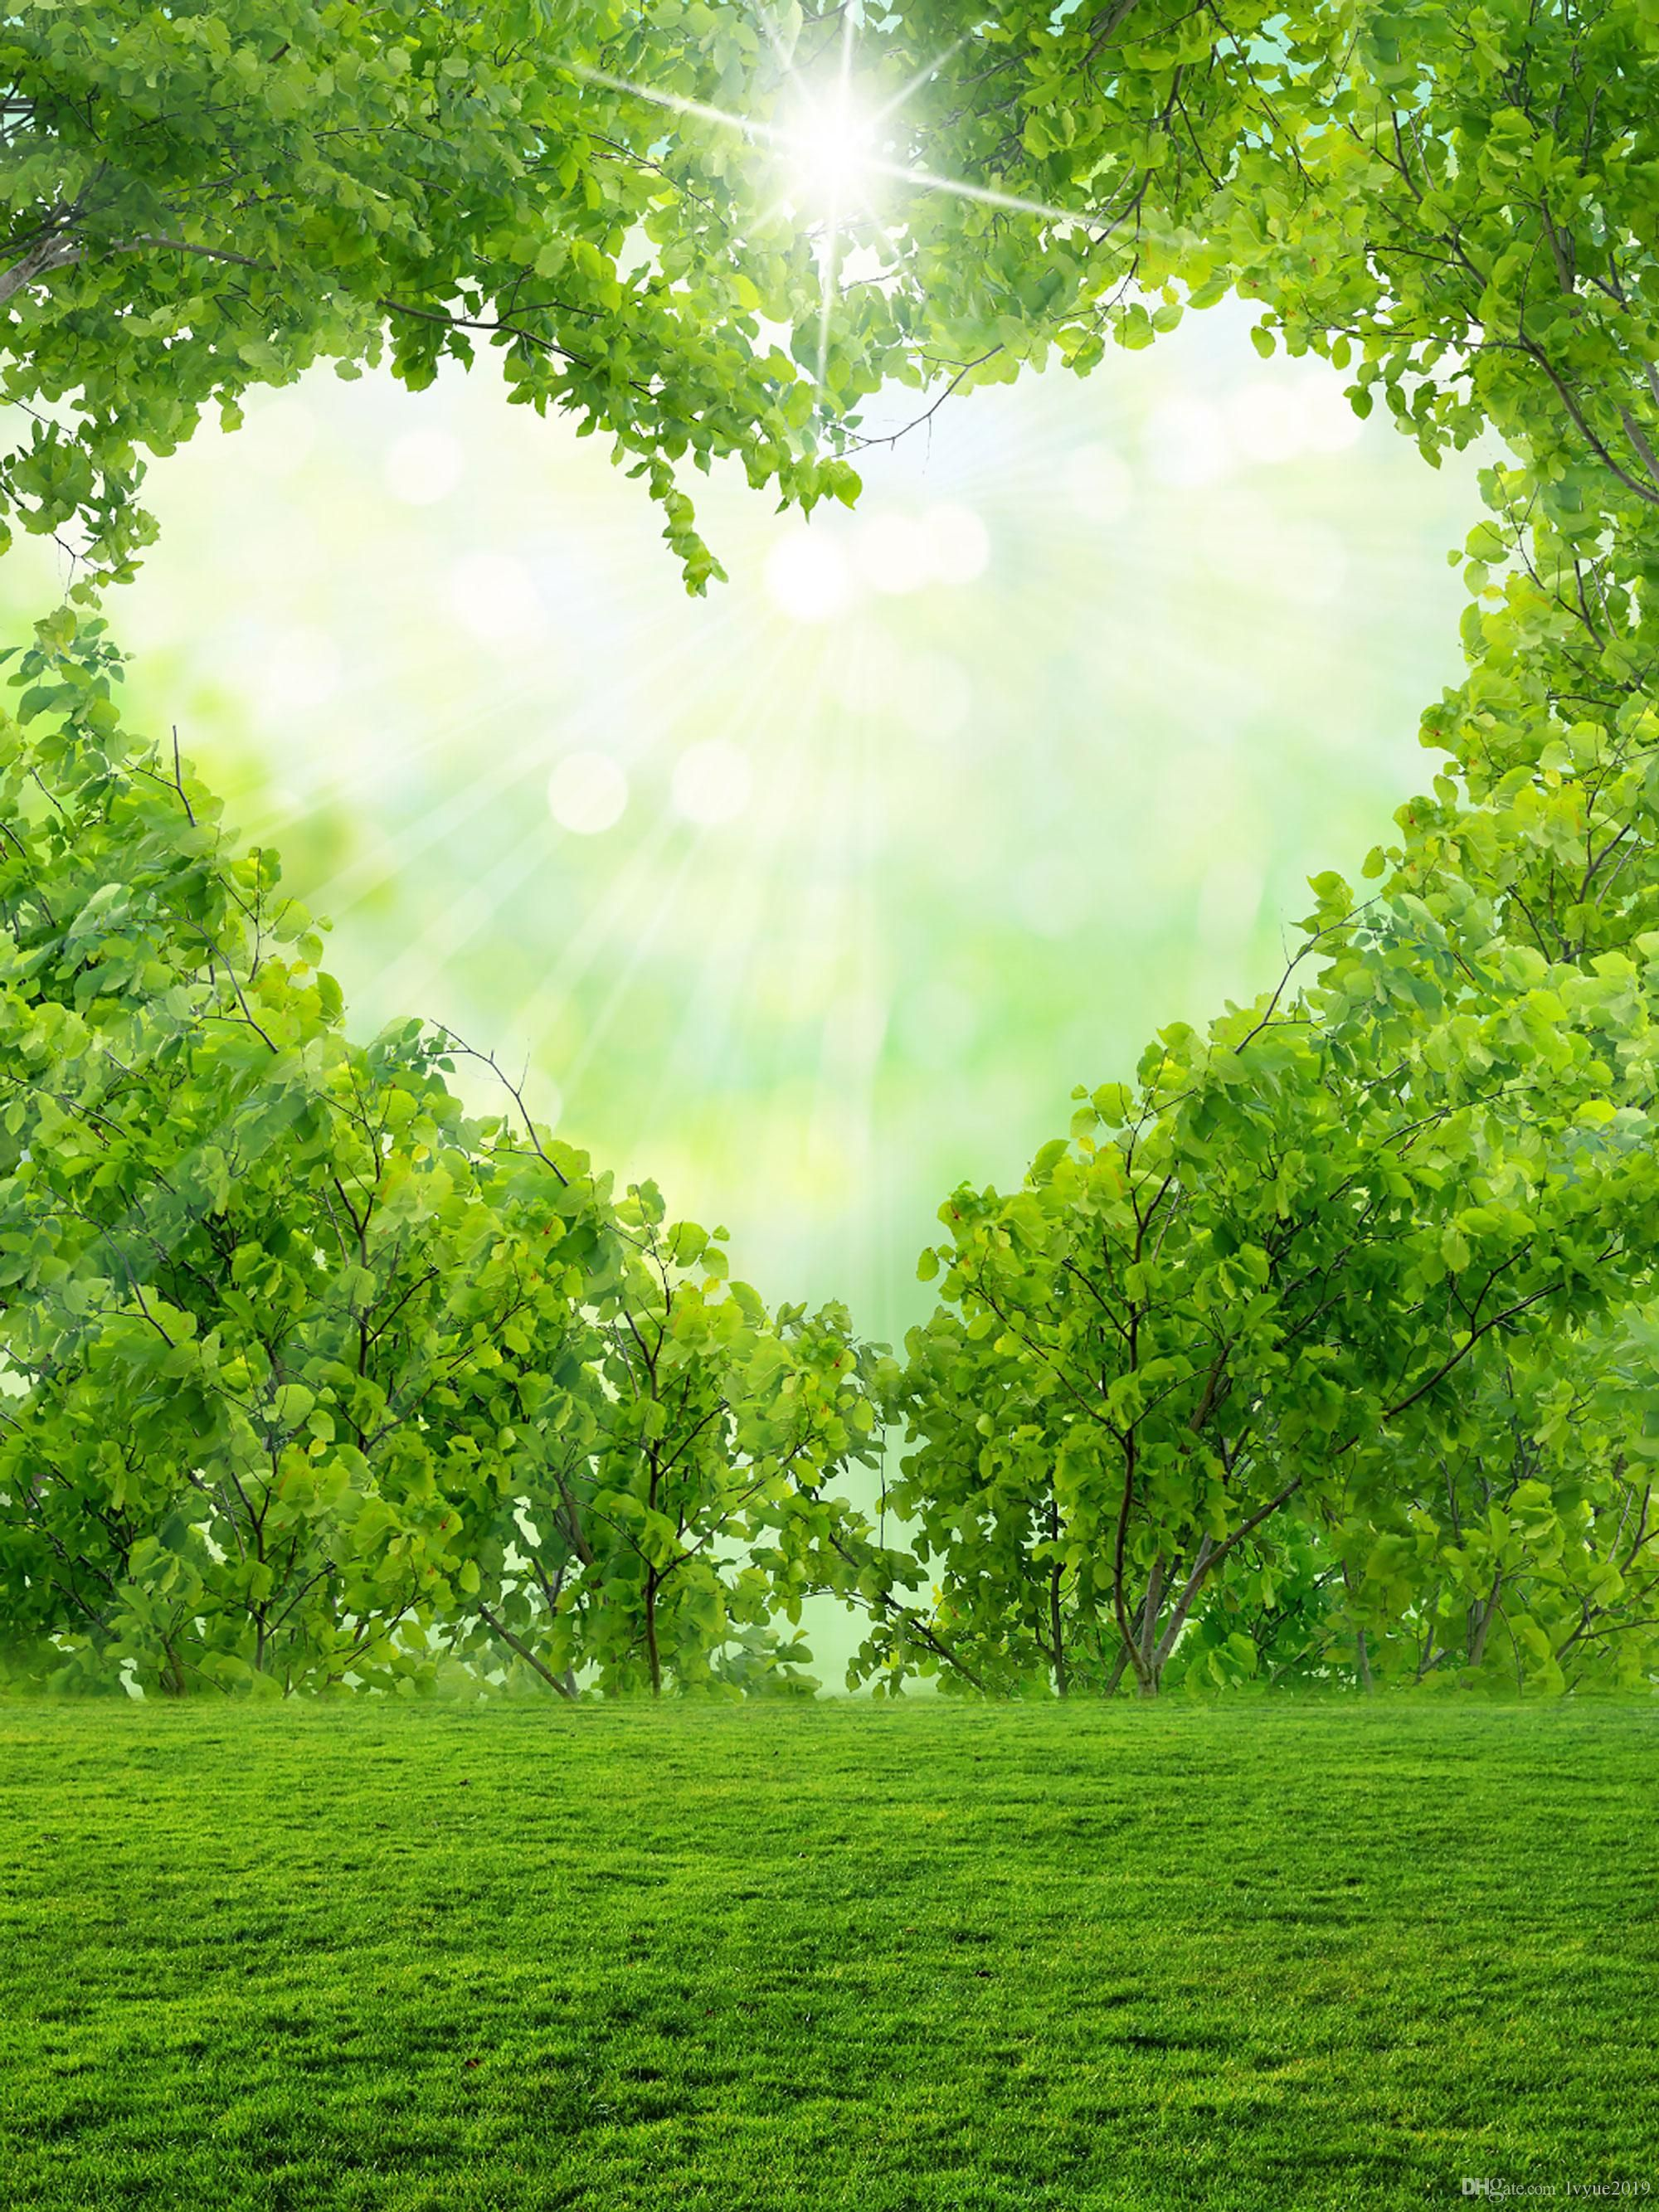 LFEEY 10x10ft Vinyl Photography Backdrop Love and Romance Fresh Green st.Patricks Day Bokeh Green Hearts Valentines Day Fresh New Life Creative Wallpaper Spring Photo Background